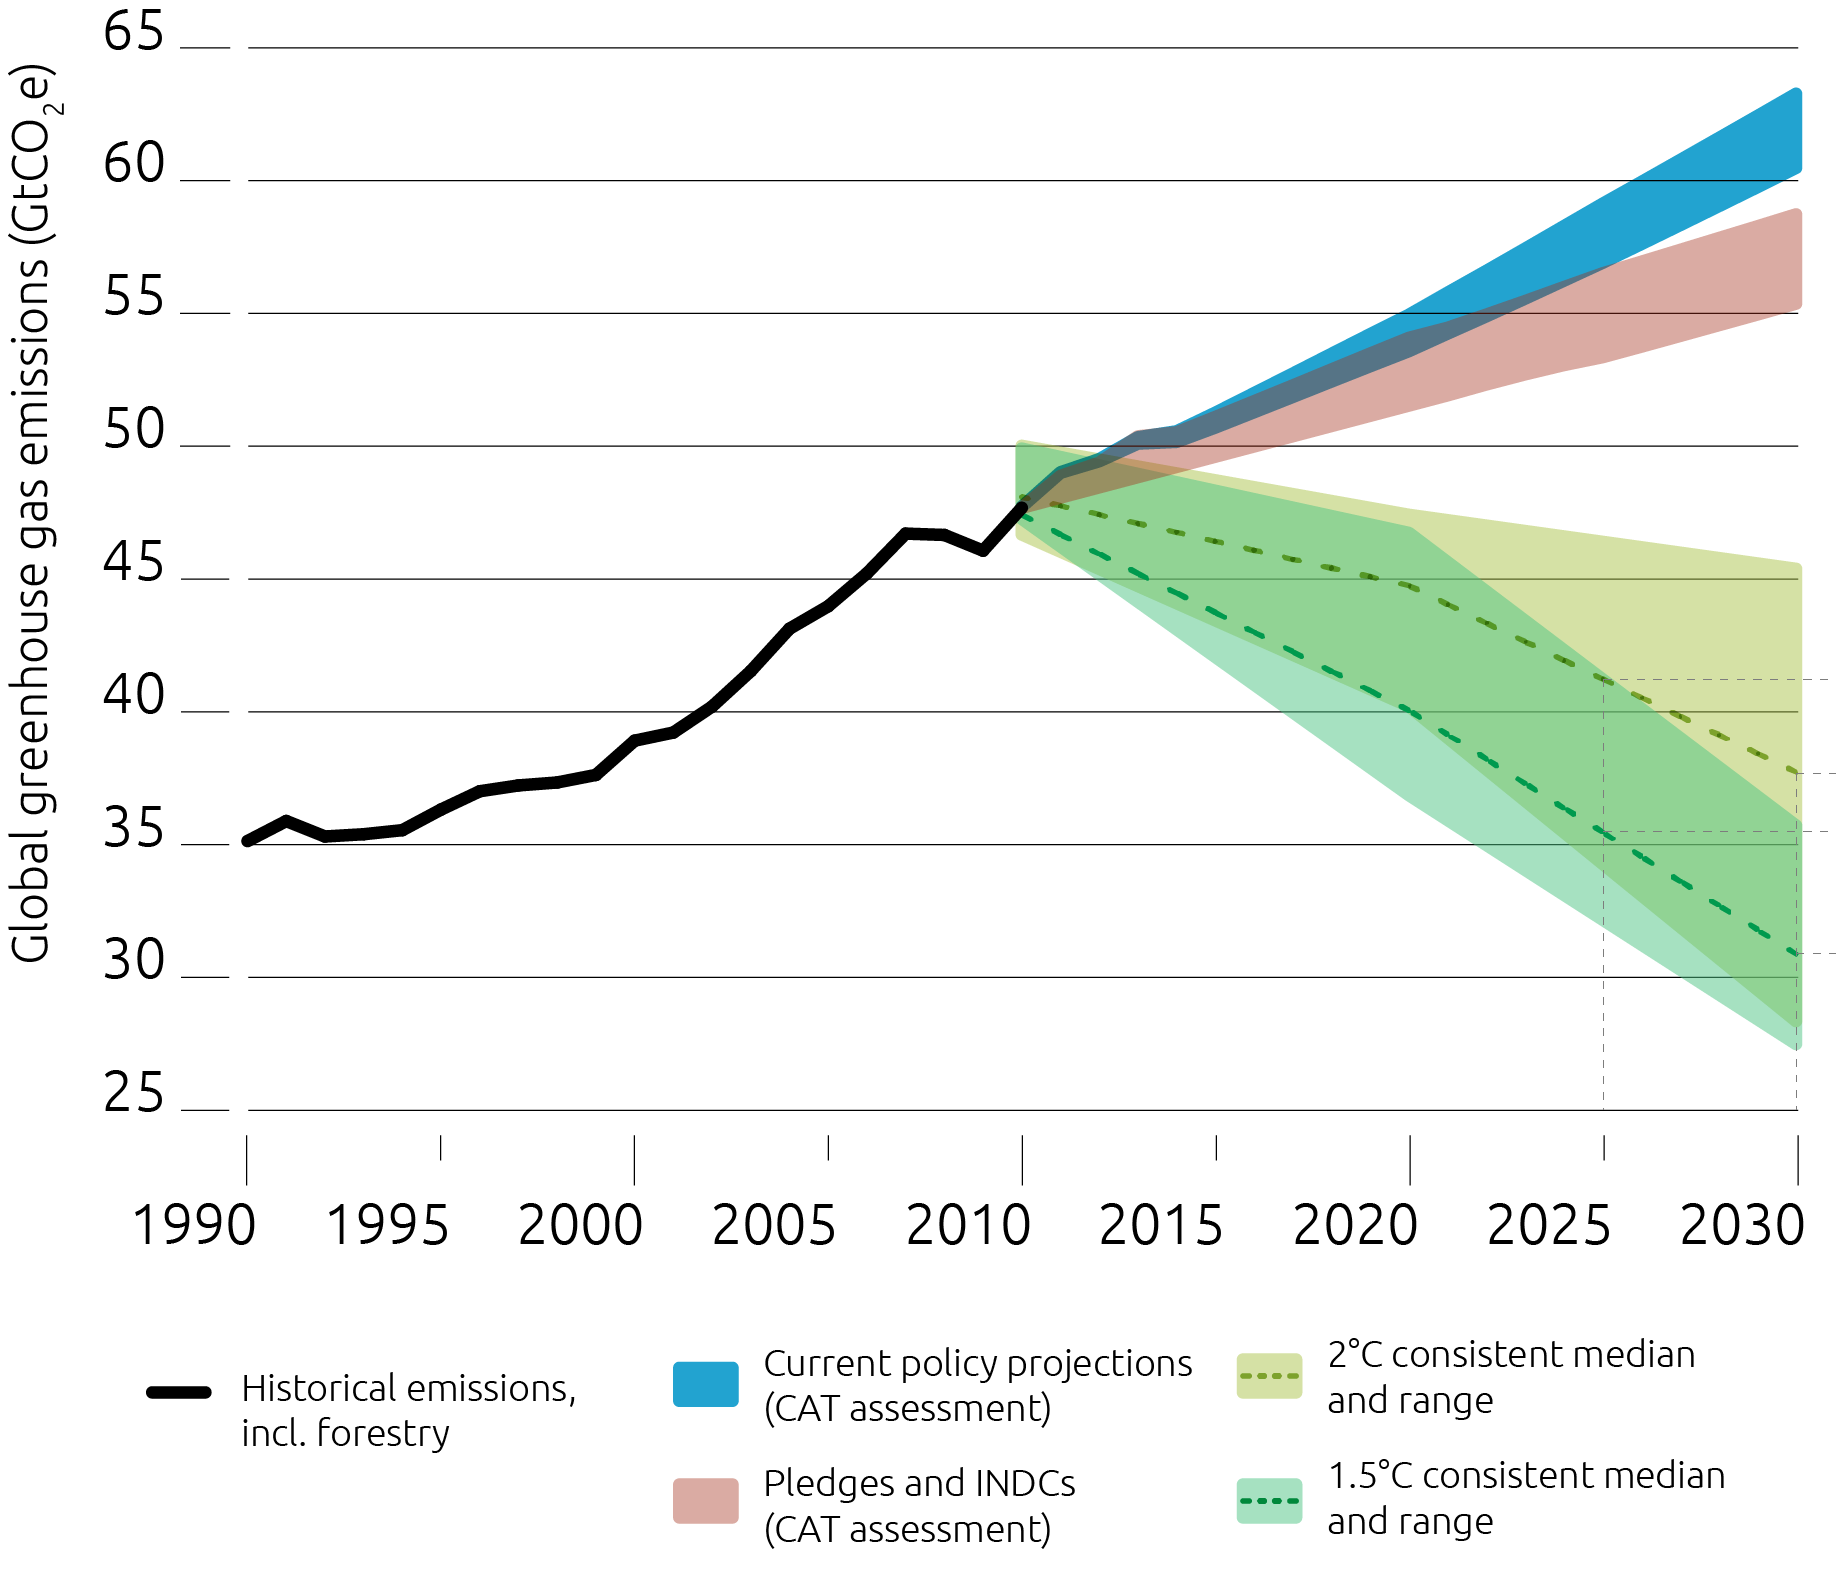 Figure 2: Global carbon projections with Paris Climate Agreement pledges and Intended Nationally Determined Contributions. Source: www.climateactiontracker.org/Climate Analytics/Ecofys/NewClimate/PIK